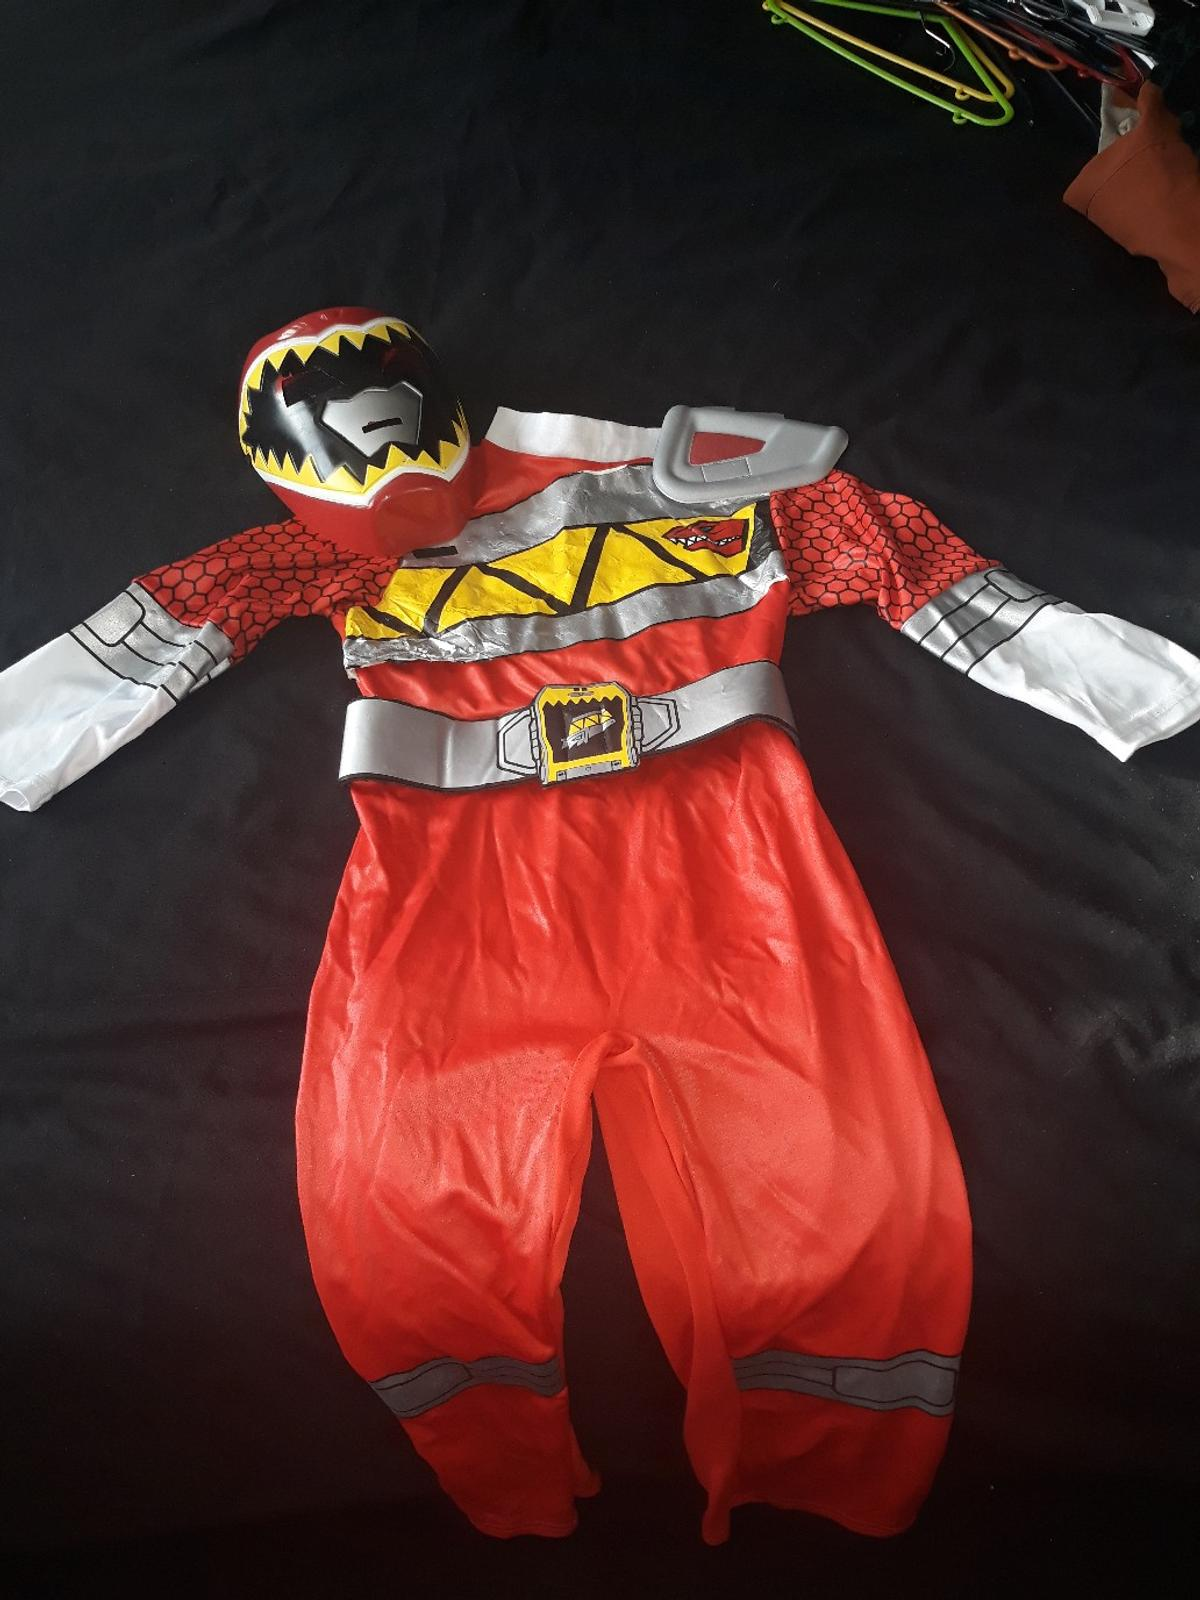 Power ranger dress up age 5 just needs iron of the front